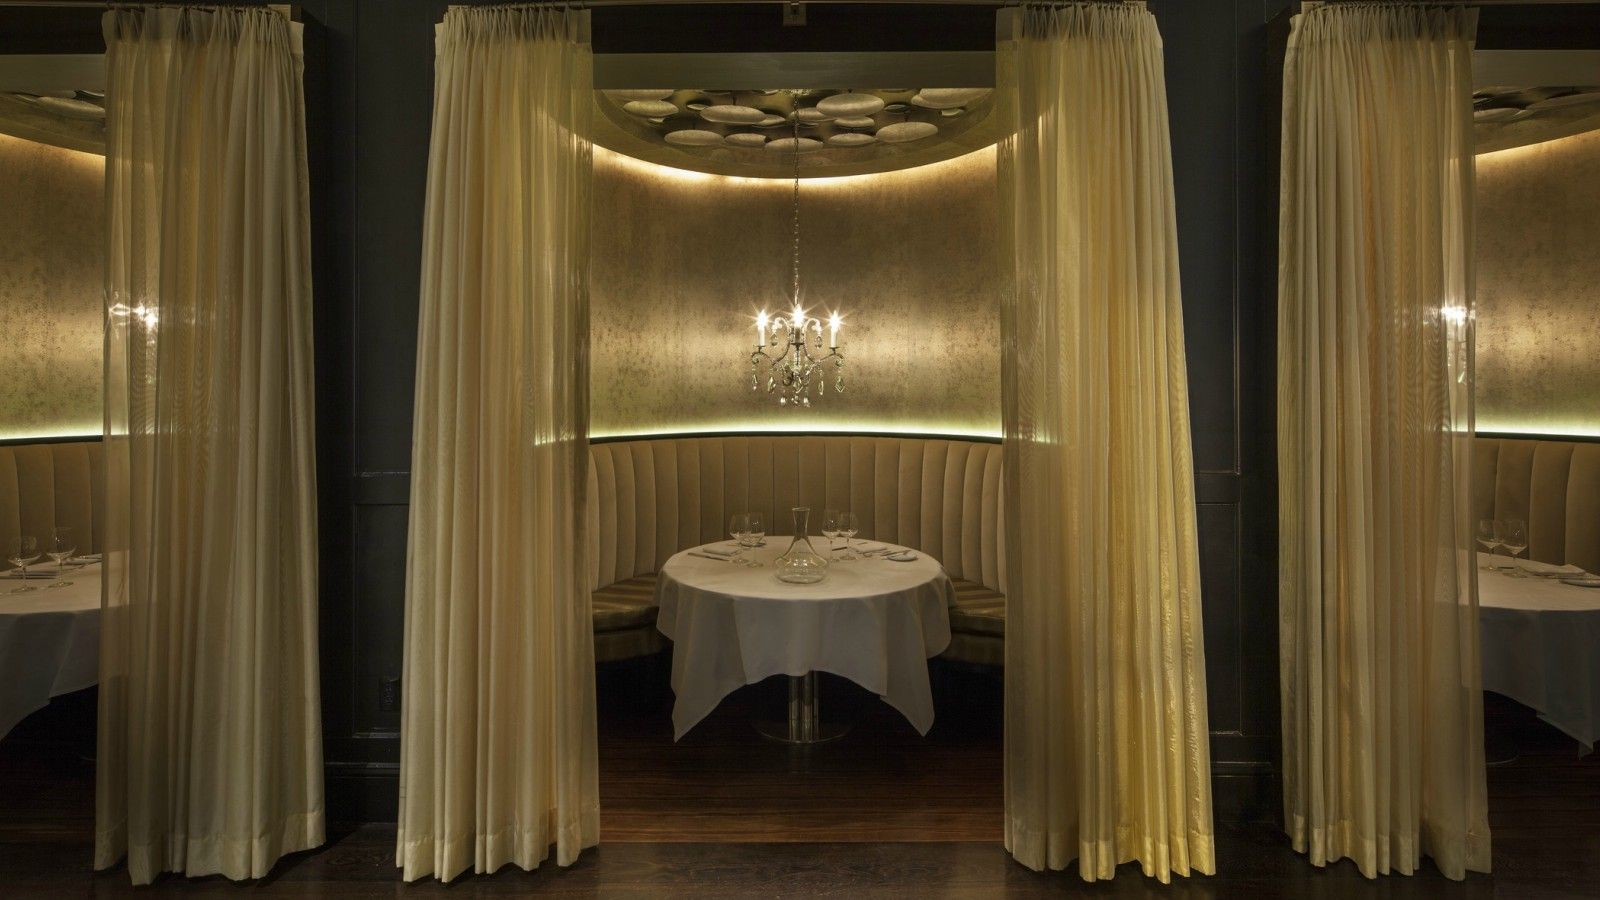 The St. Regis Restaurant Booth